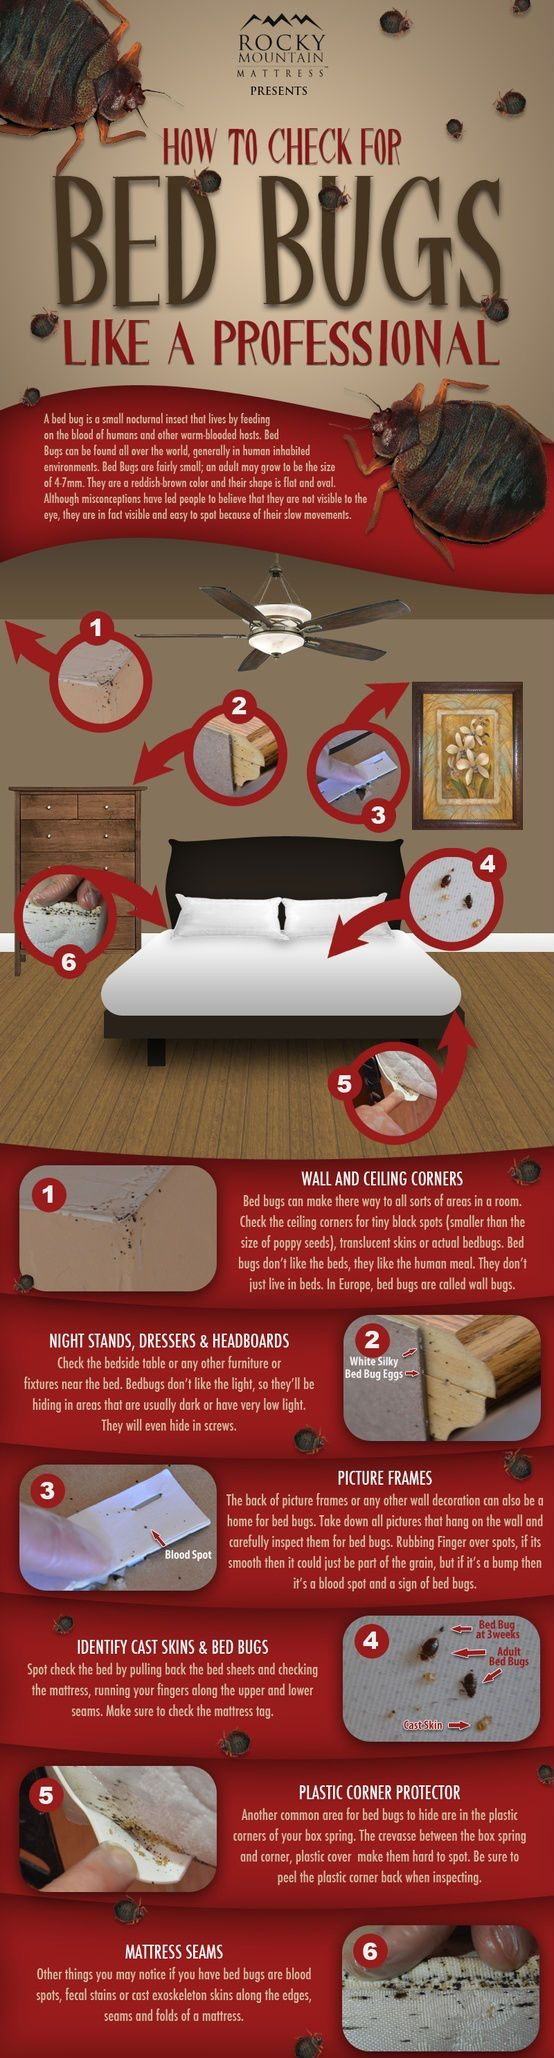 Bed bugs are one of the major problem in US. The company